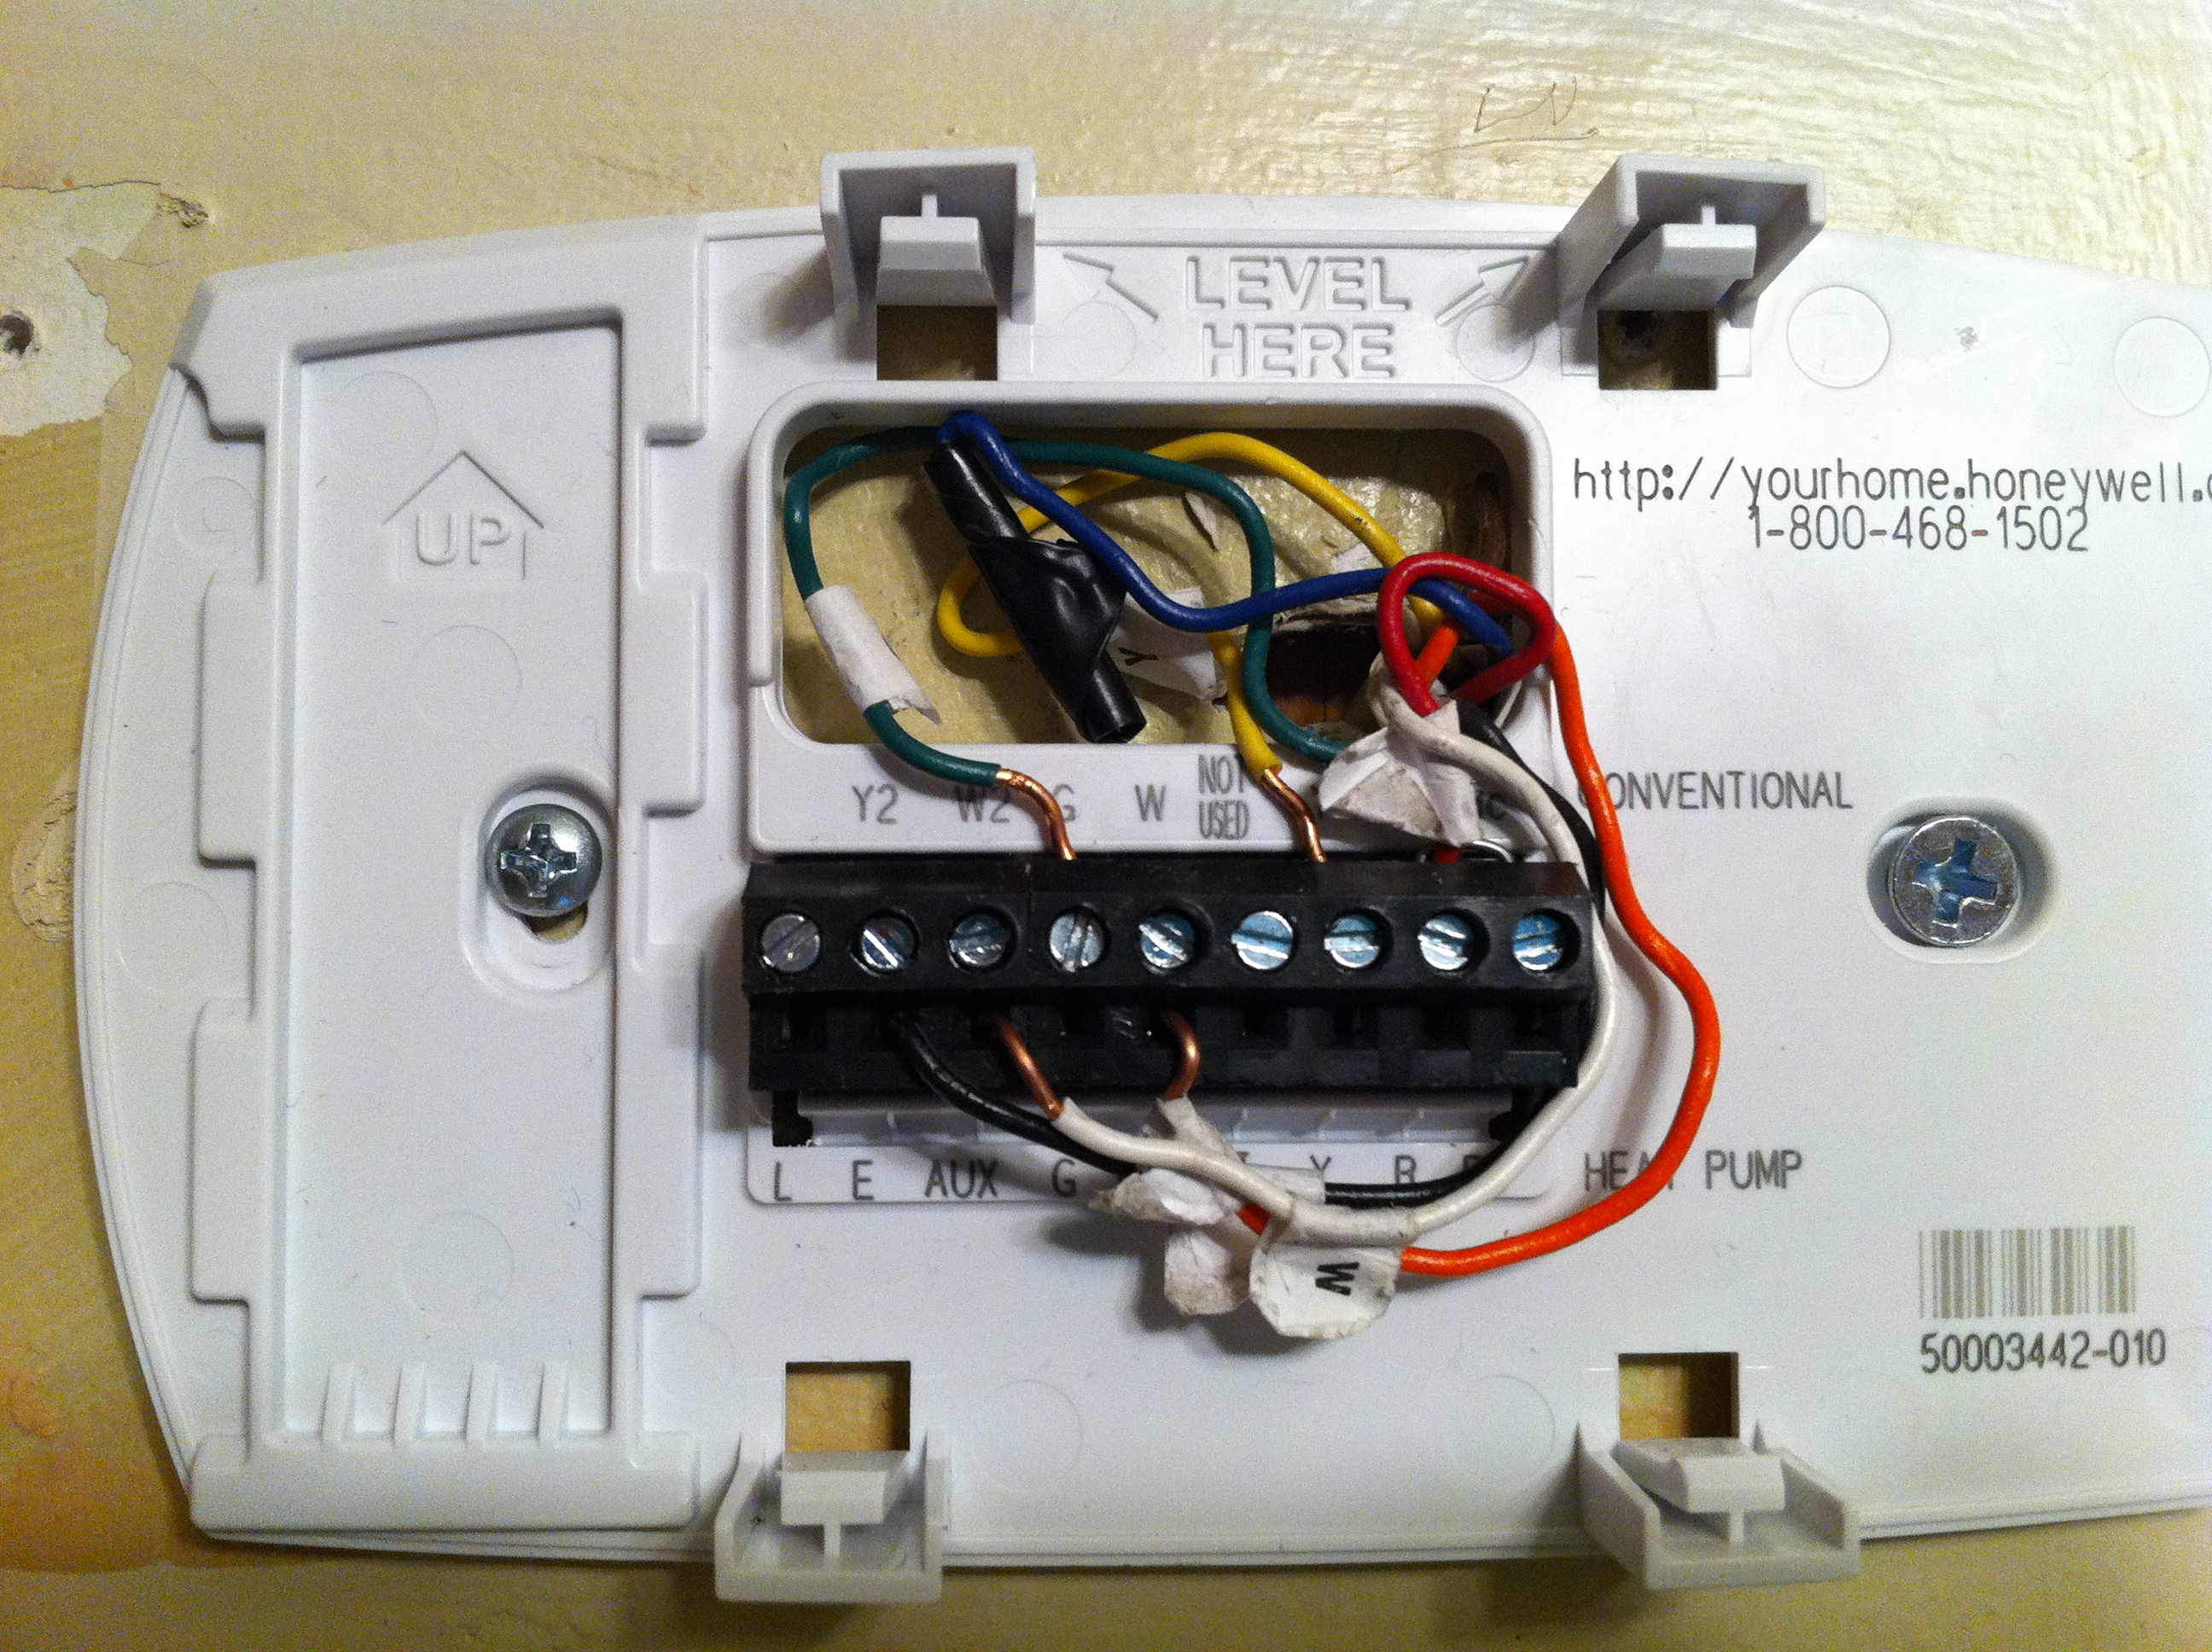 A4B02A Honeywell Thermostat T8411r Wiring Diagram | Wiring LibraryWiring Library